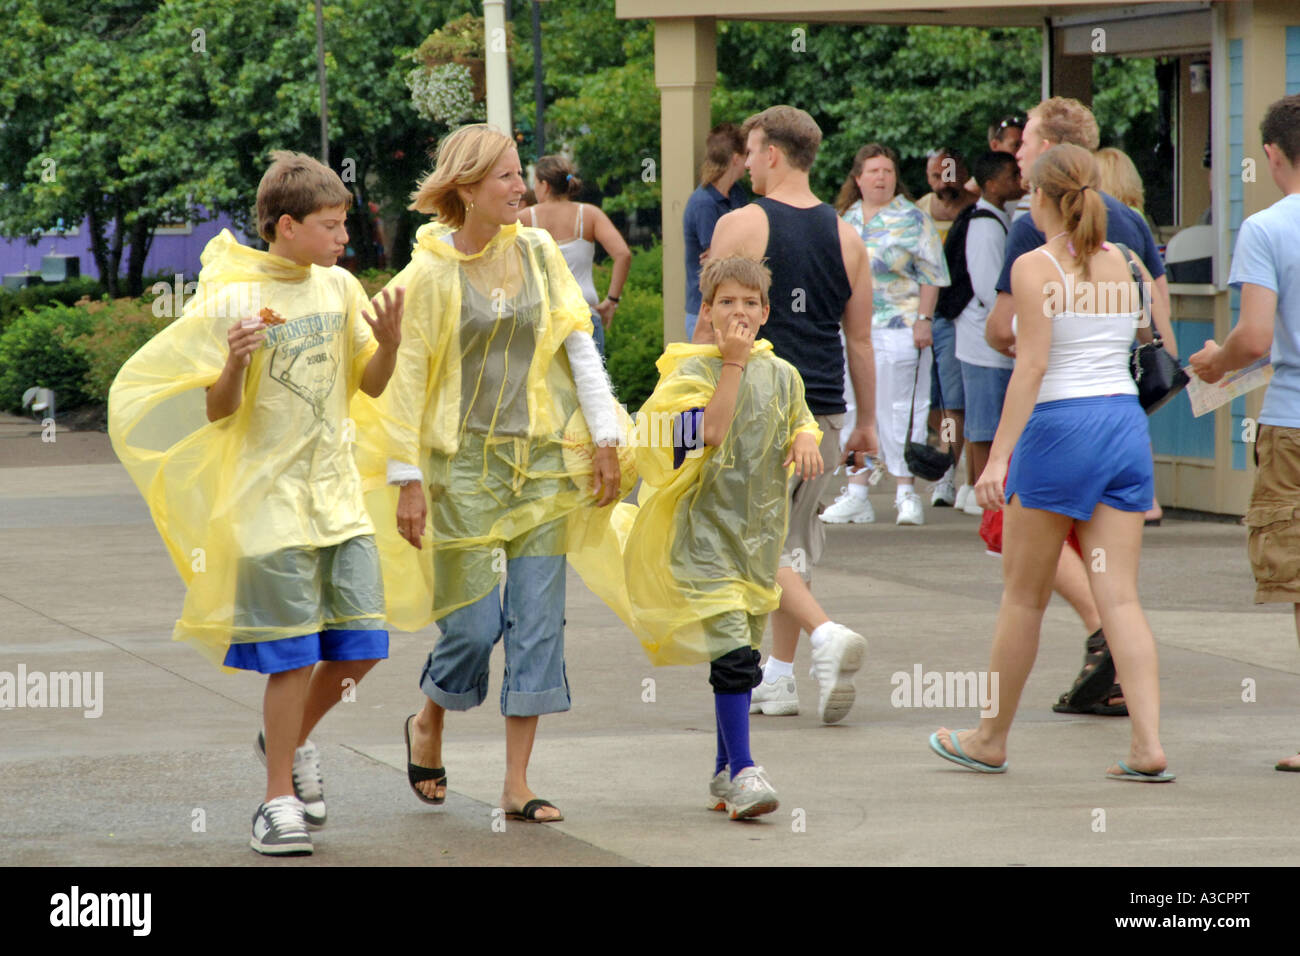 Family wearing rain ponchos on a wet day at Cedar Point Amusement Park Sandusky Ohio OH - Stock Image